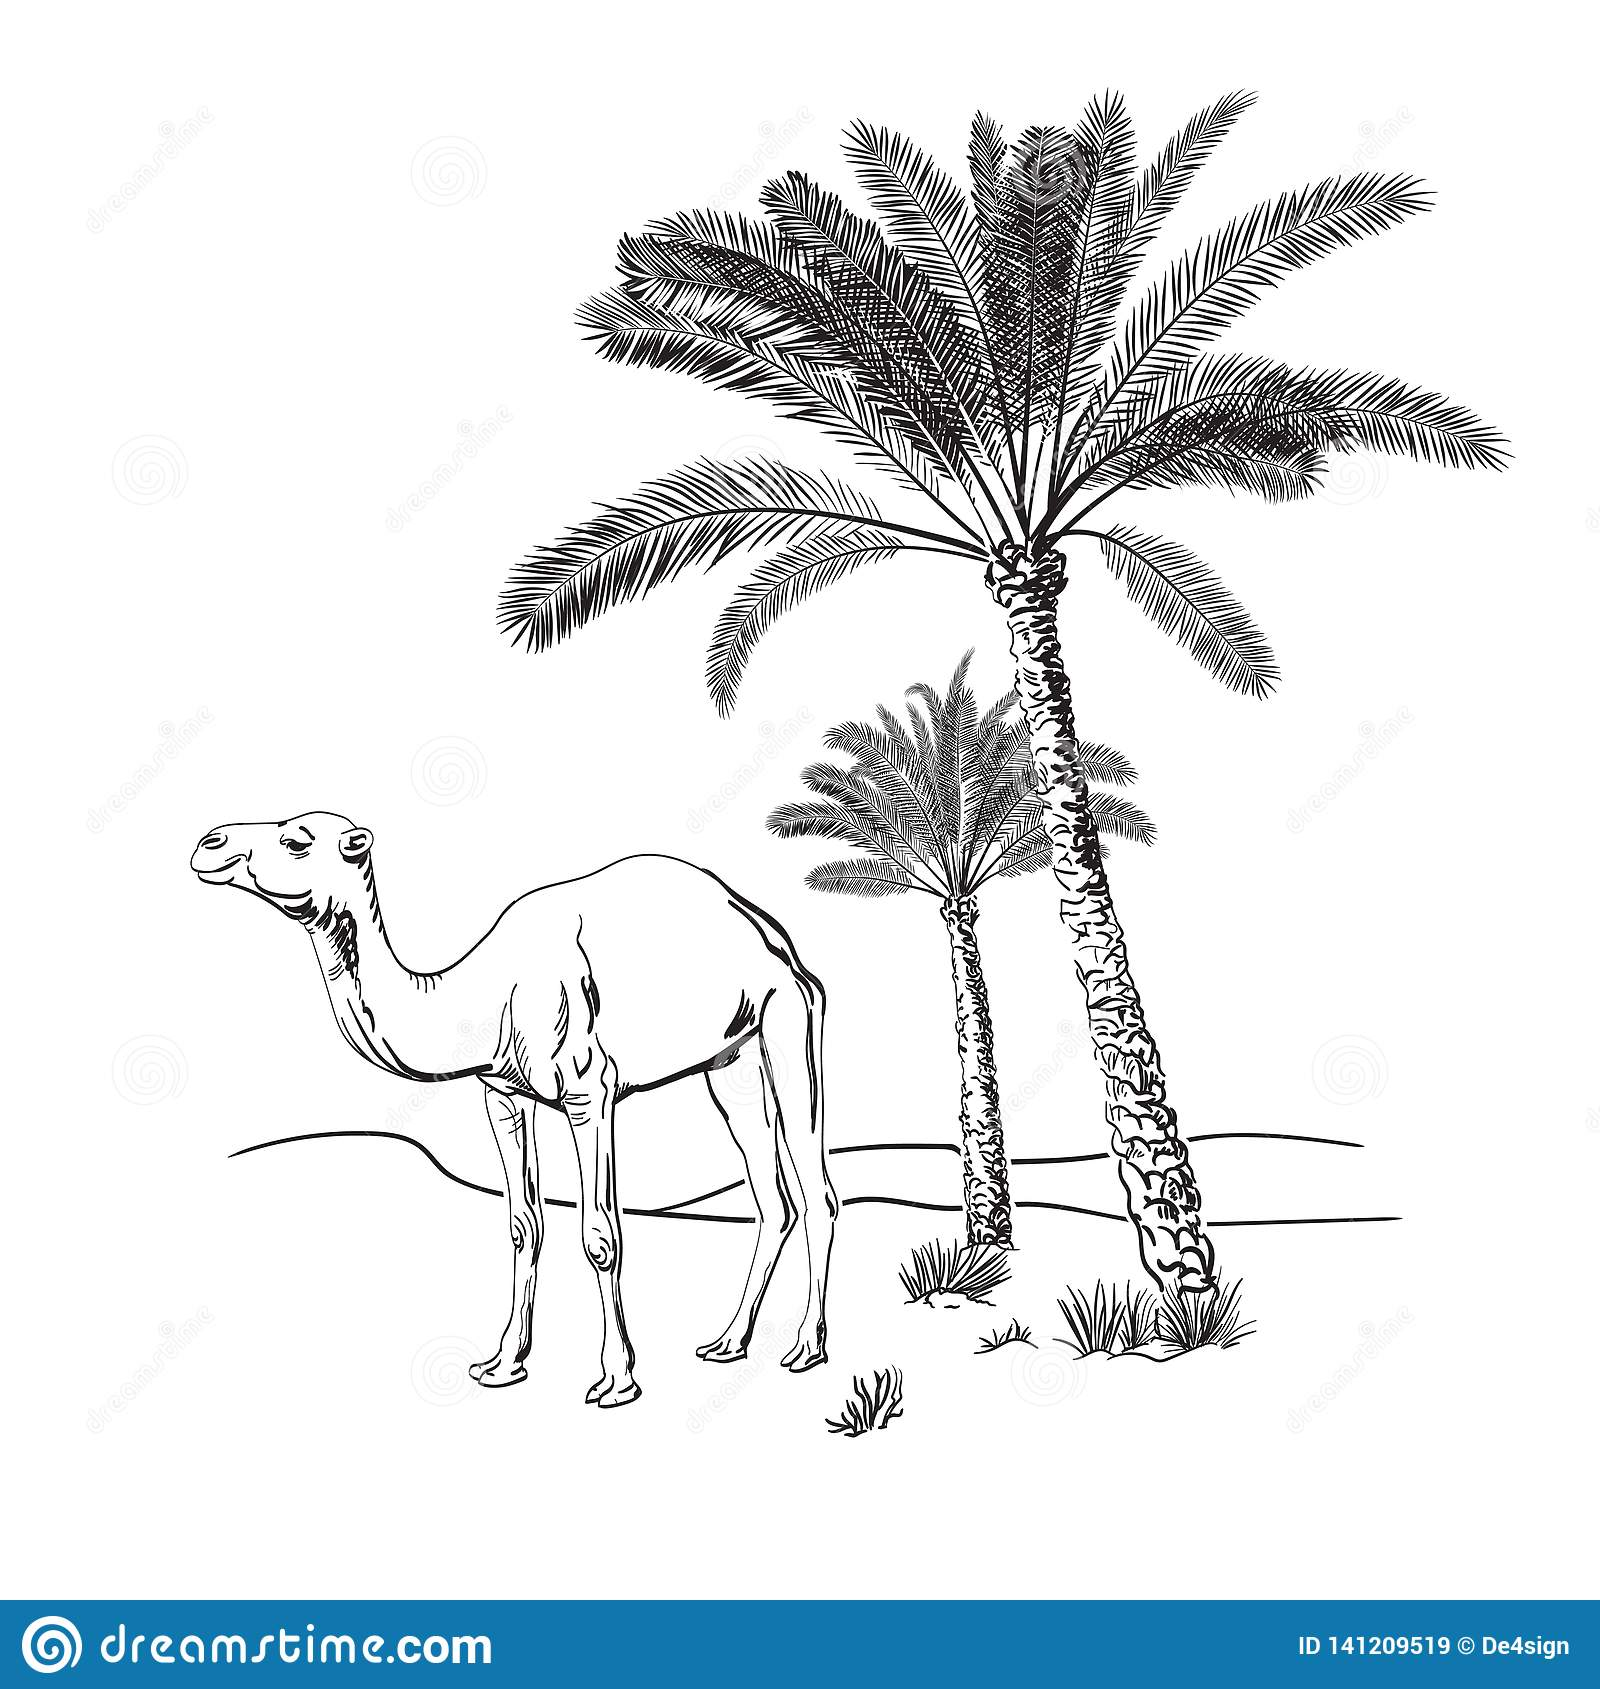 Camel and palm trees in the desert. Hand drawn vector illustration. Sketch